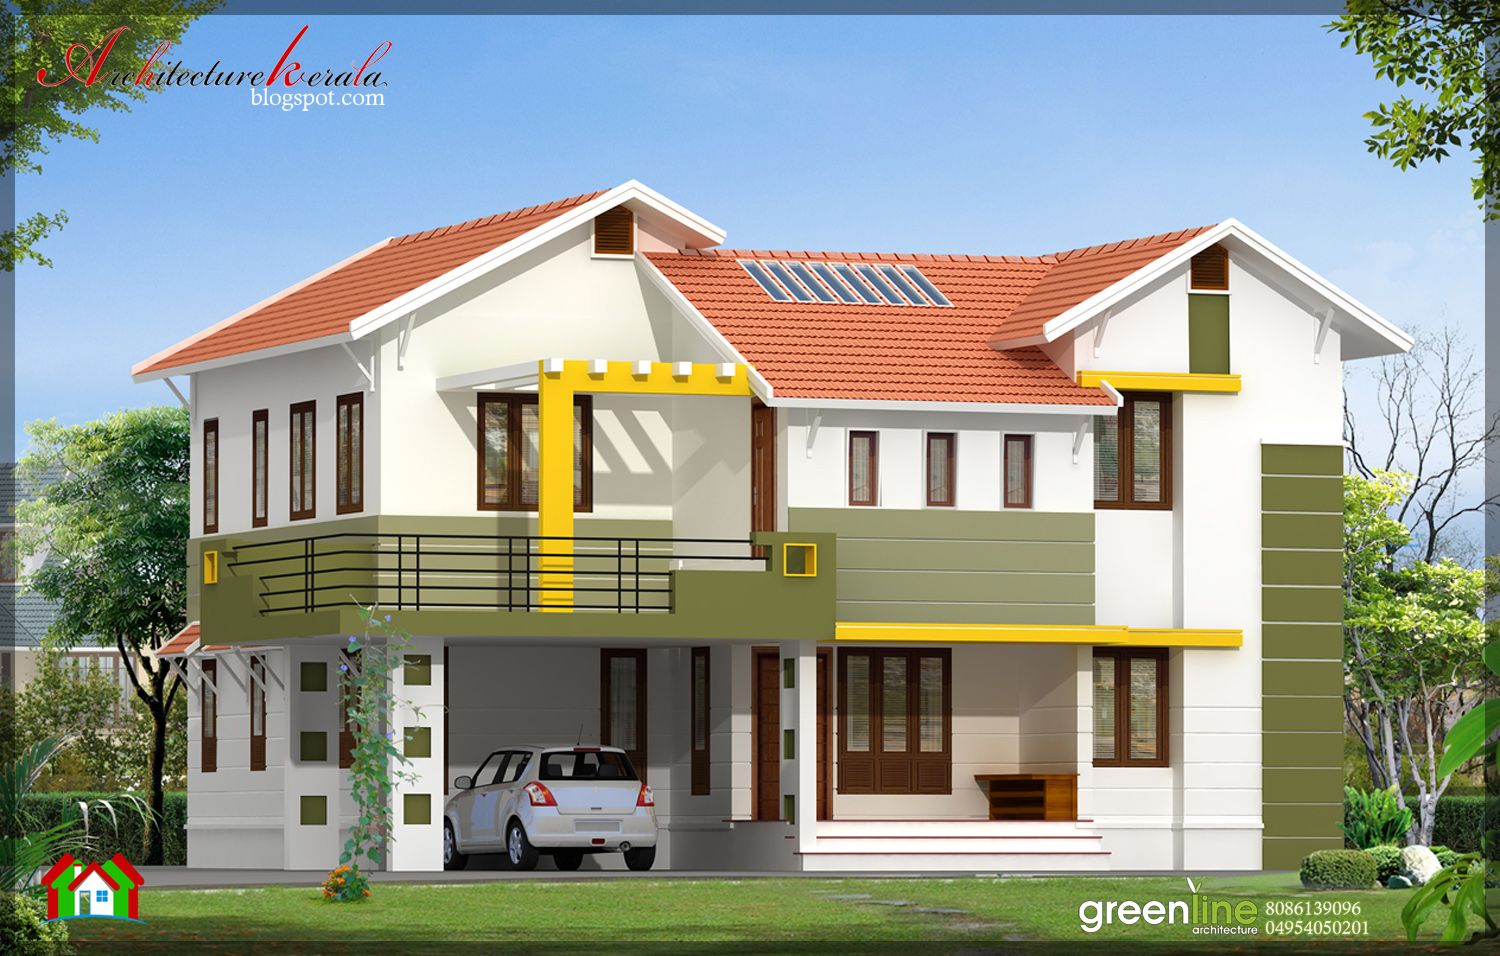 Architecture Kerala: 4 BHK CONTEMPORARY STYLE INDIAN HOME